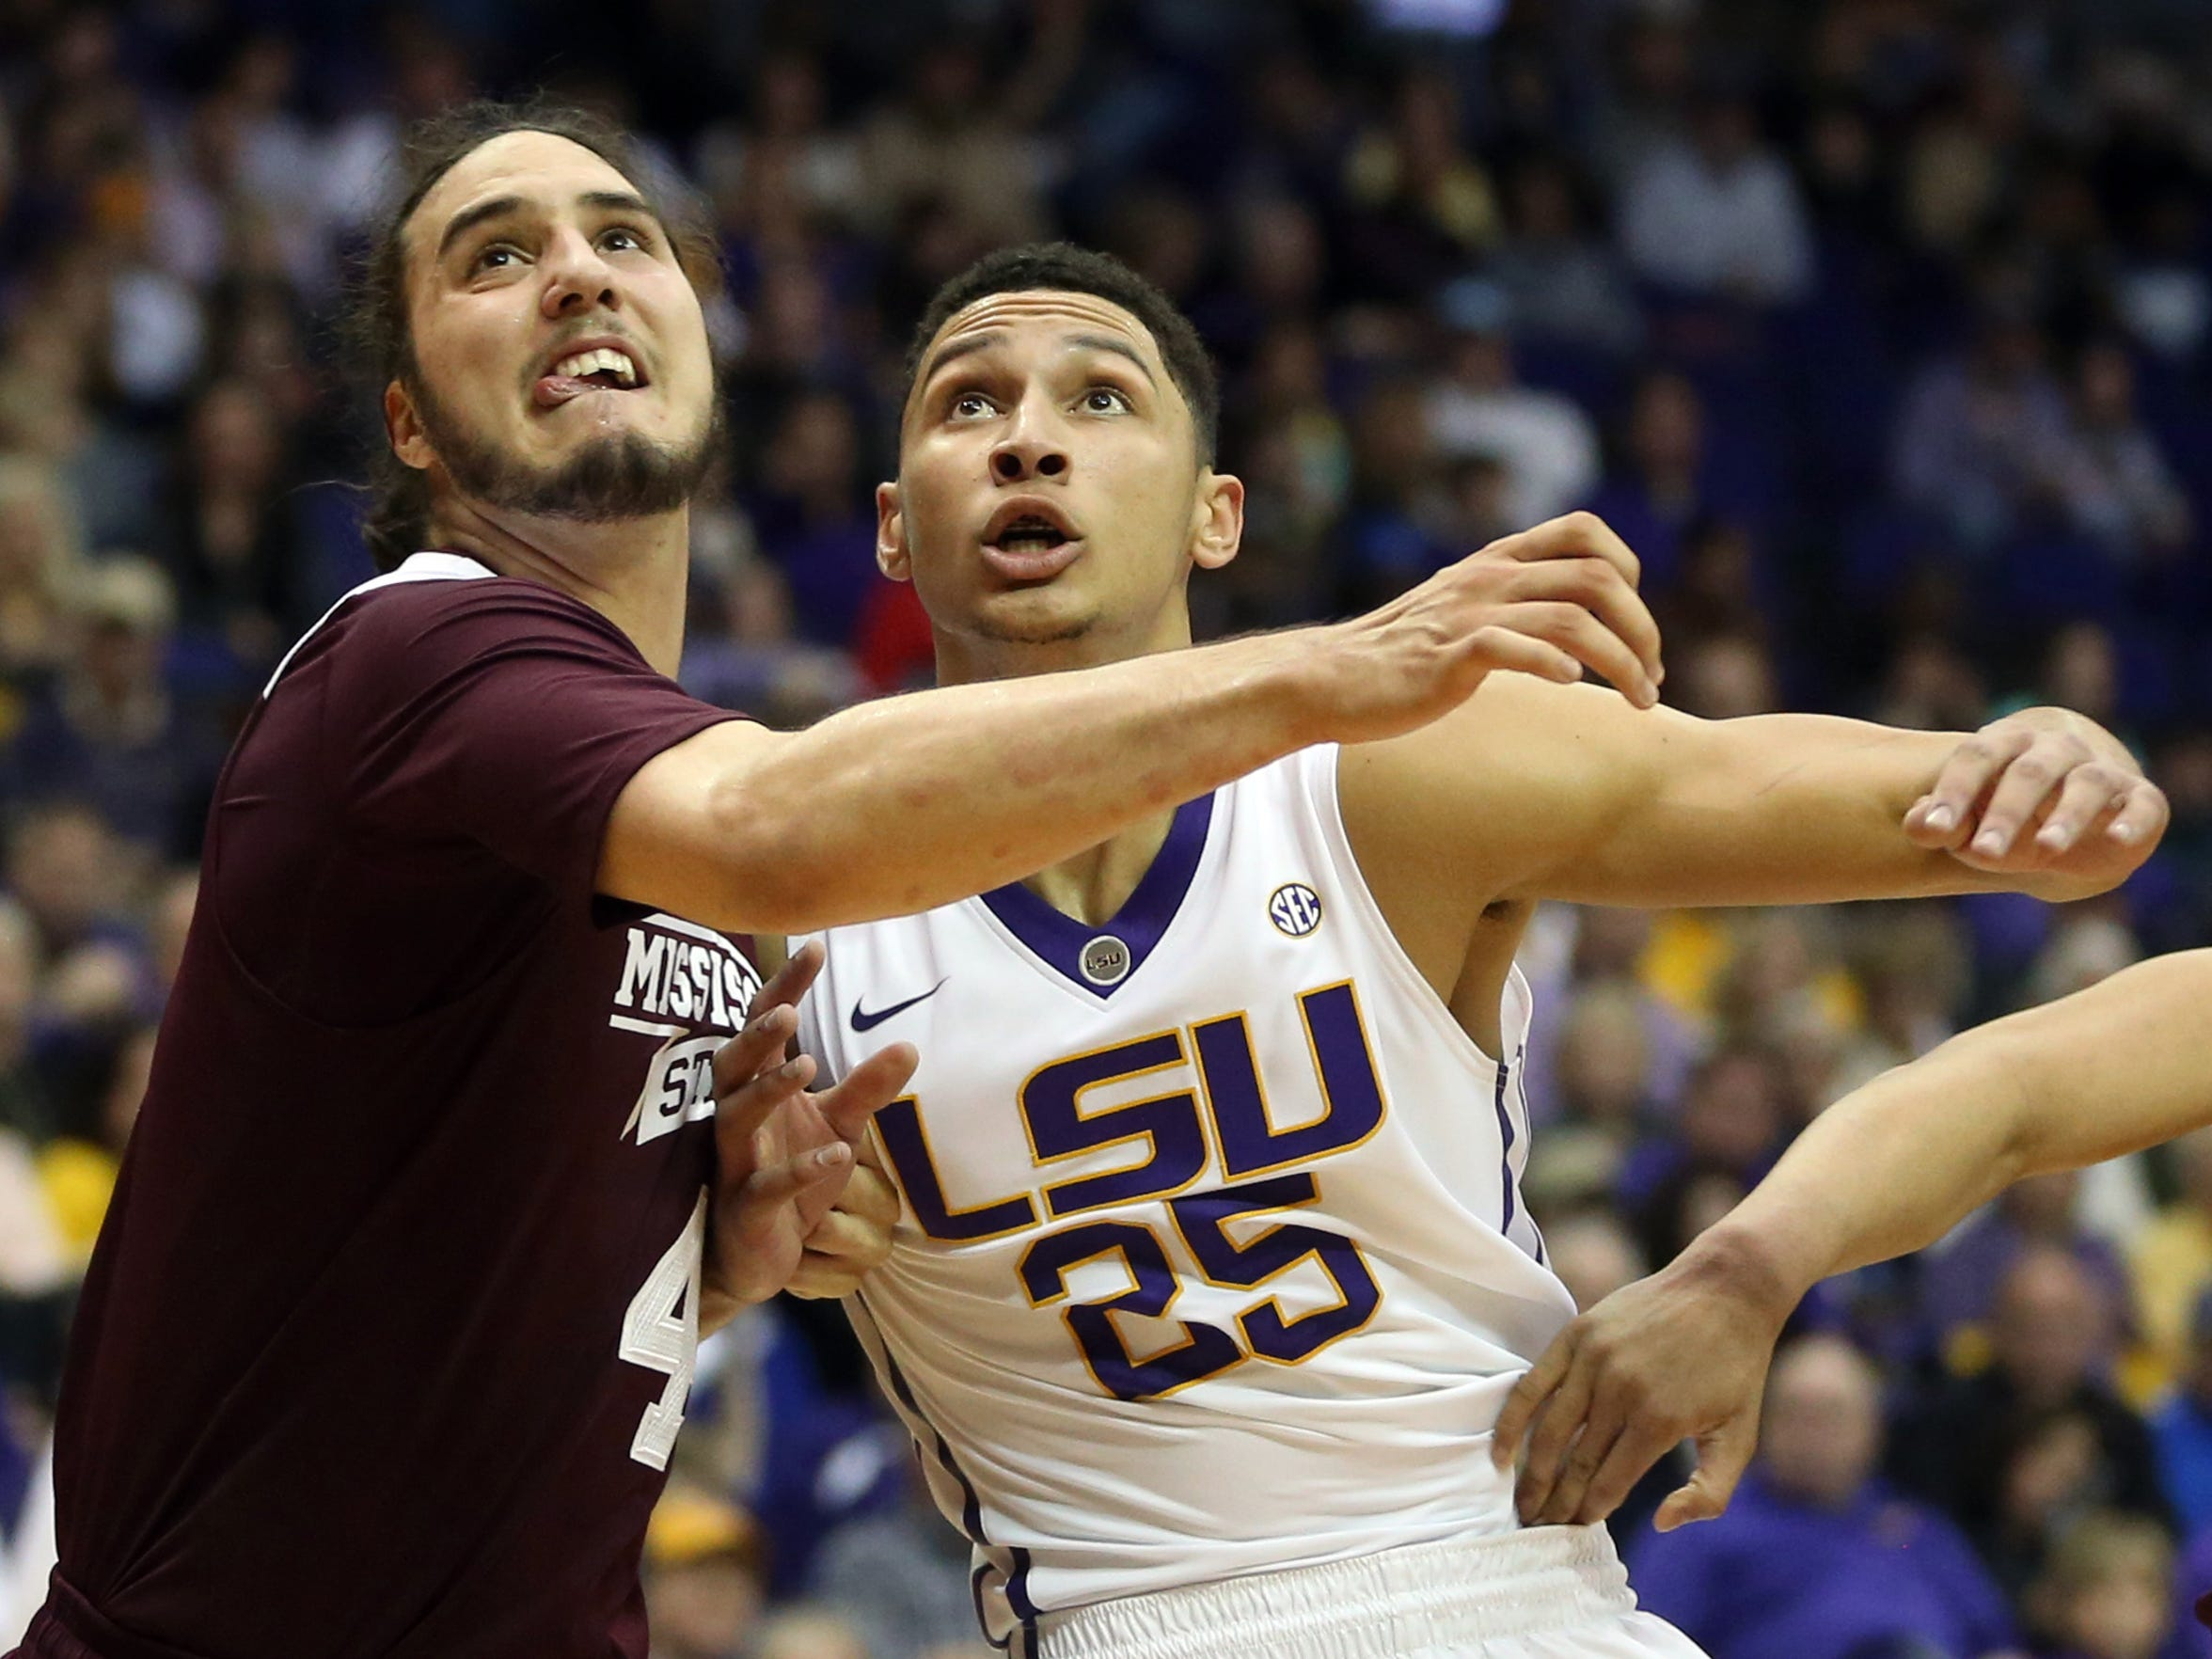 Mississippi State forward Johnny Zuppardo, right, is